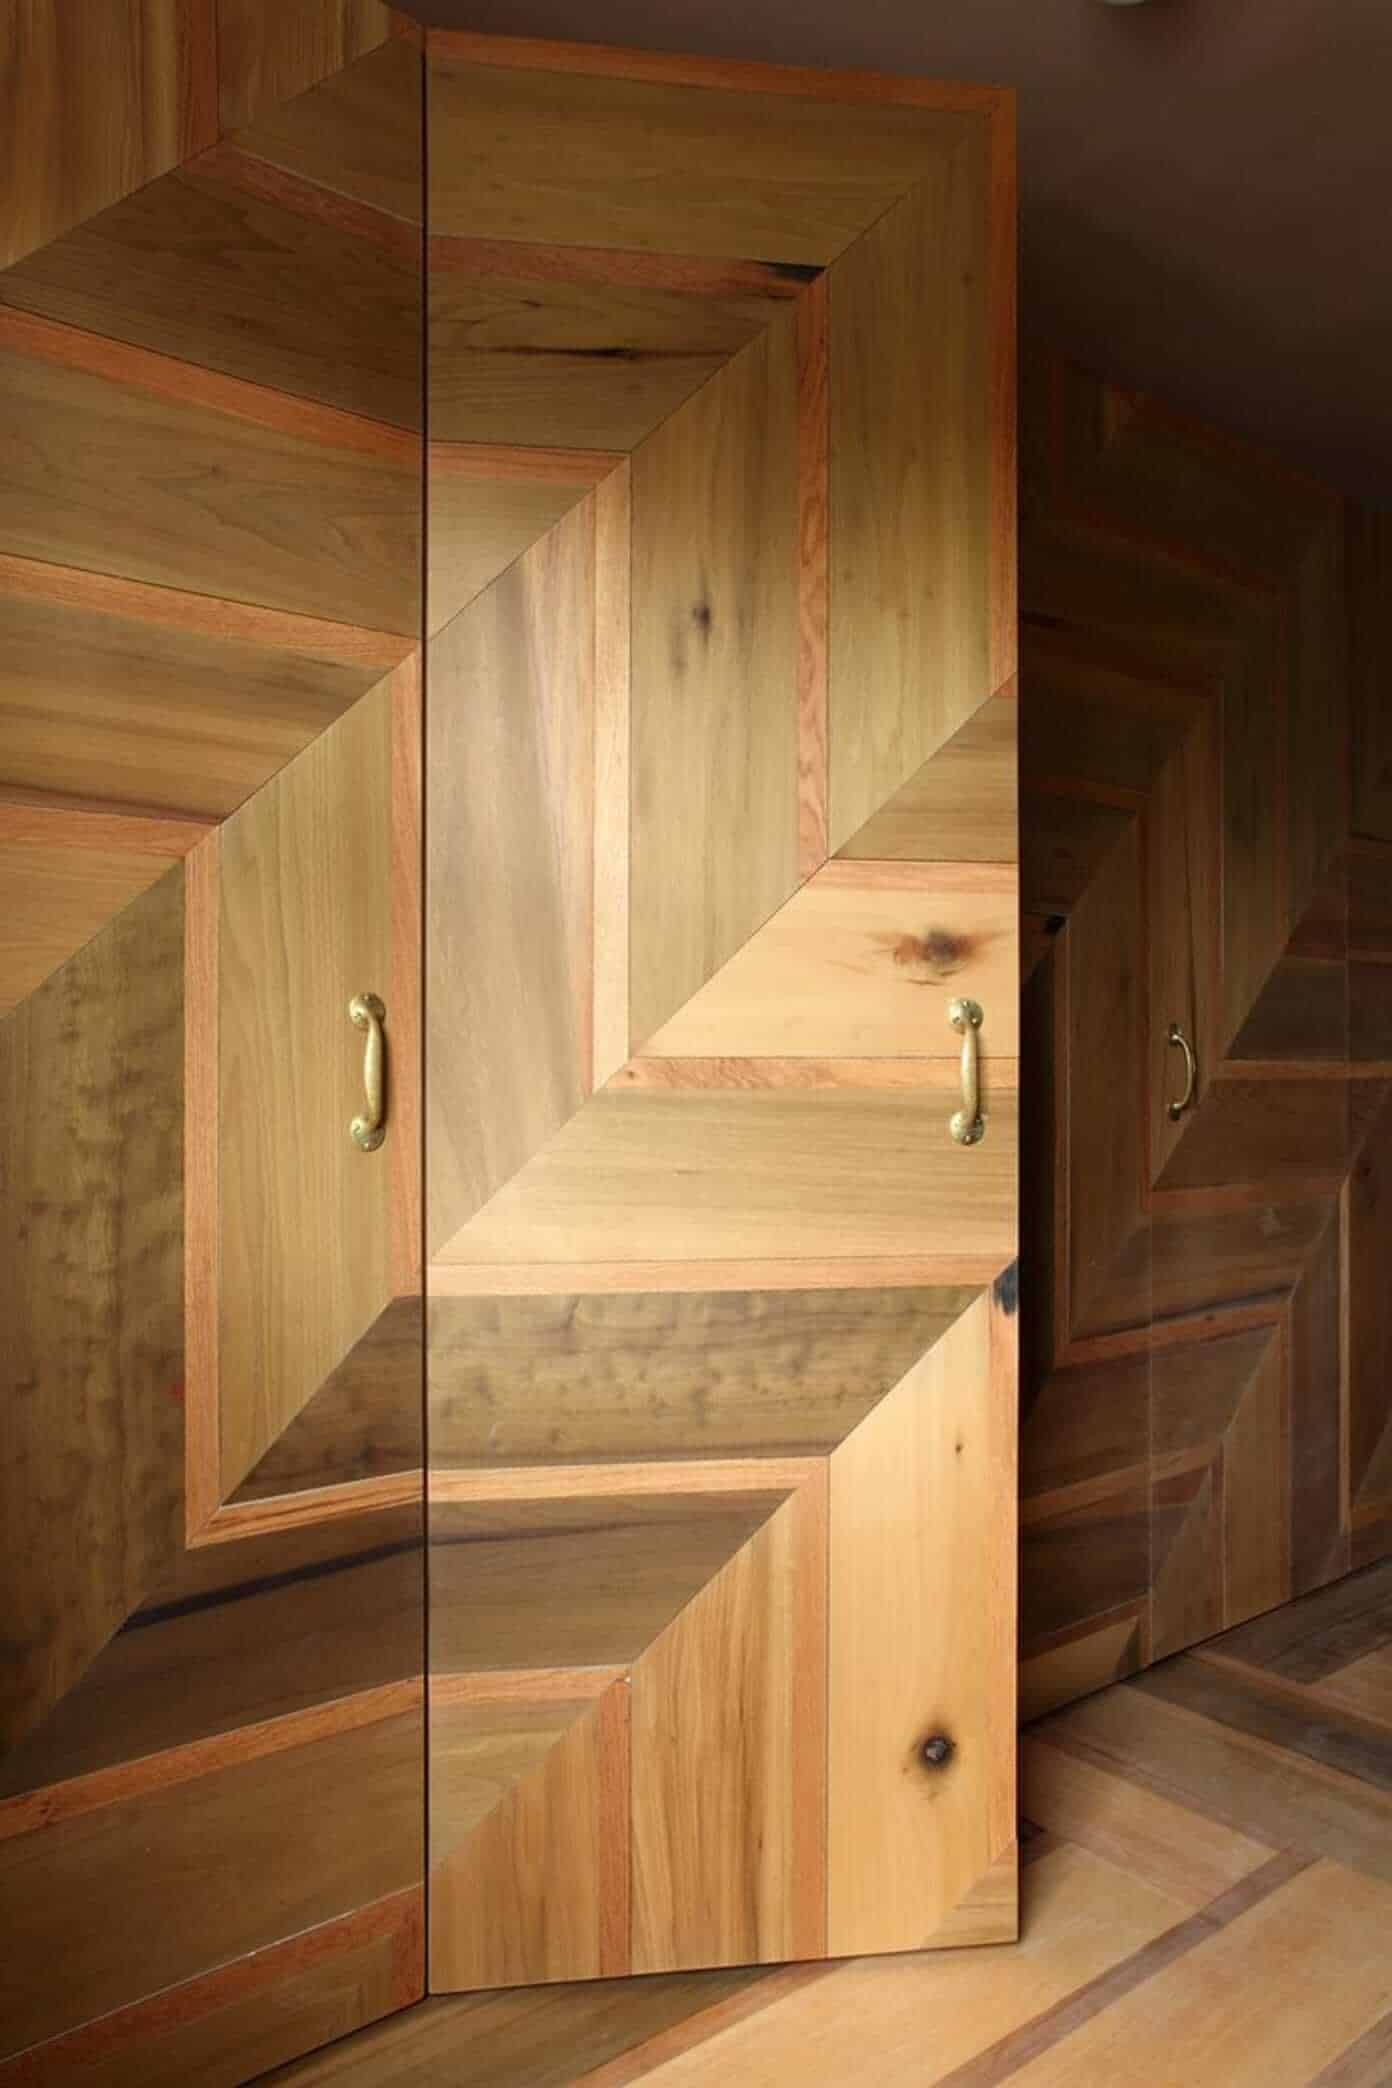 door design with chevron wood pattern in different natural shades of wood